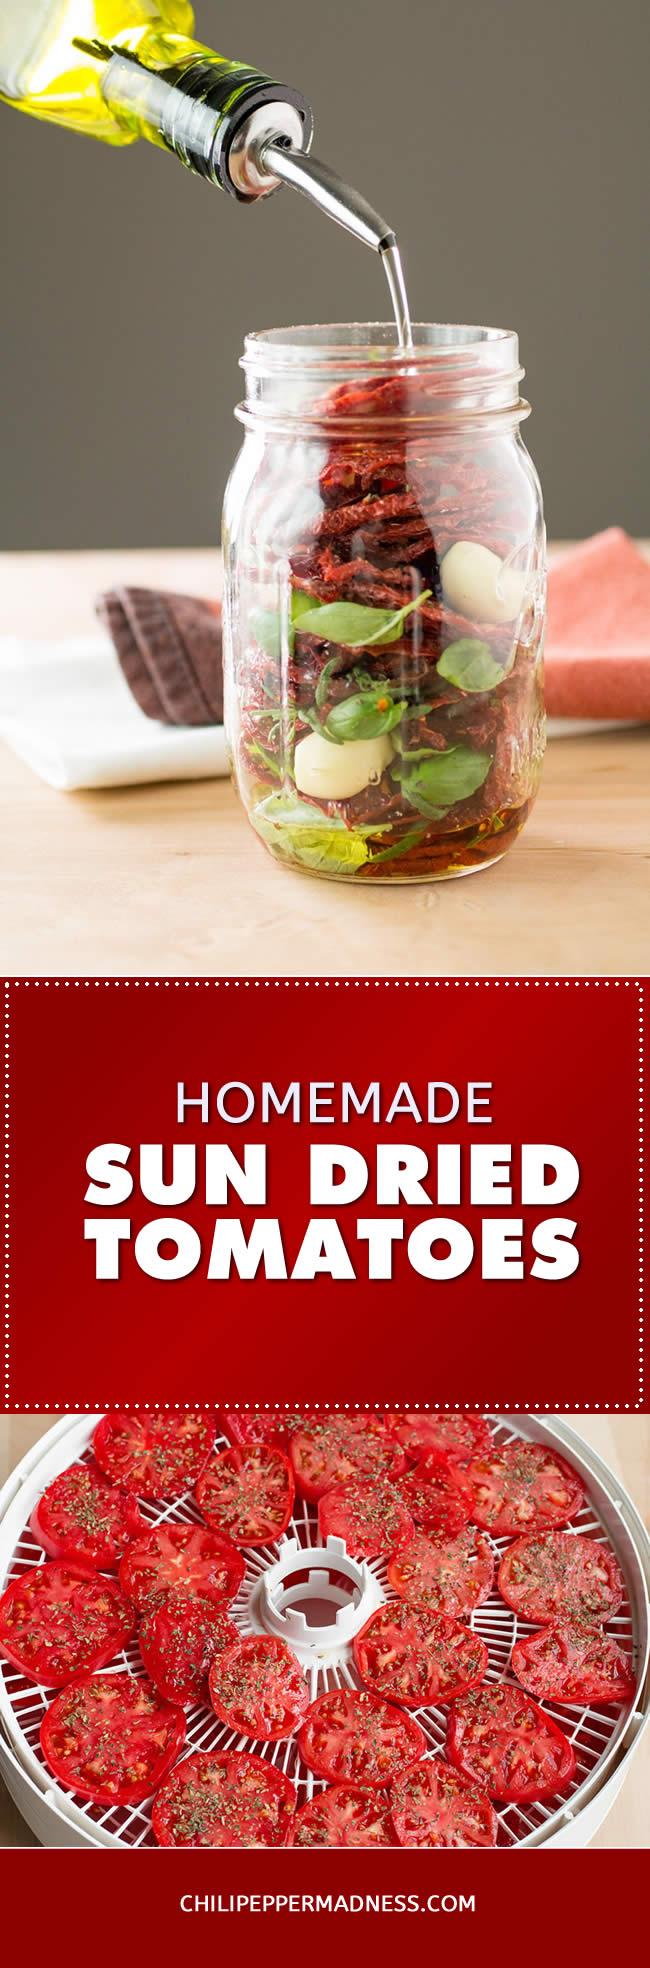 How To Make Sun Dried Tomatoes With A Dehydrator